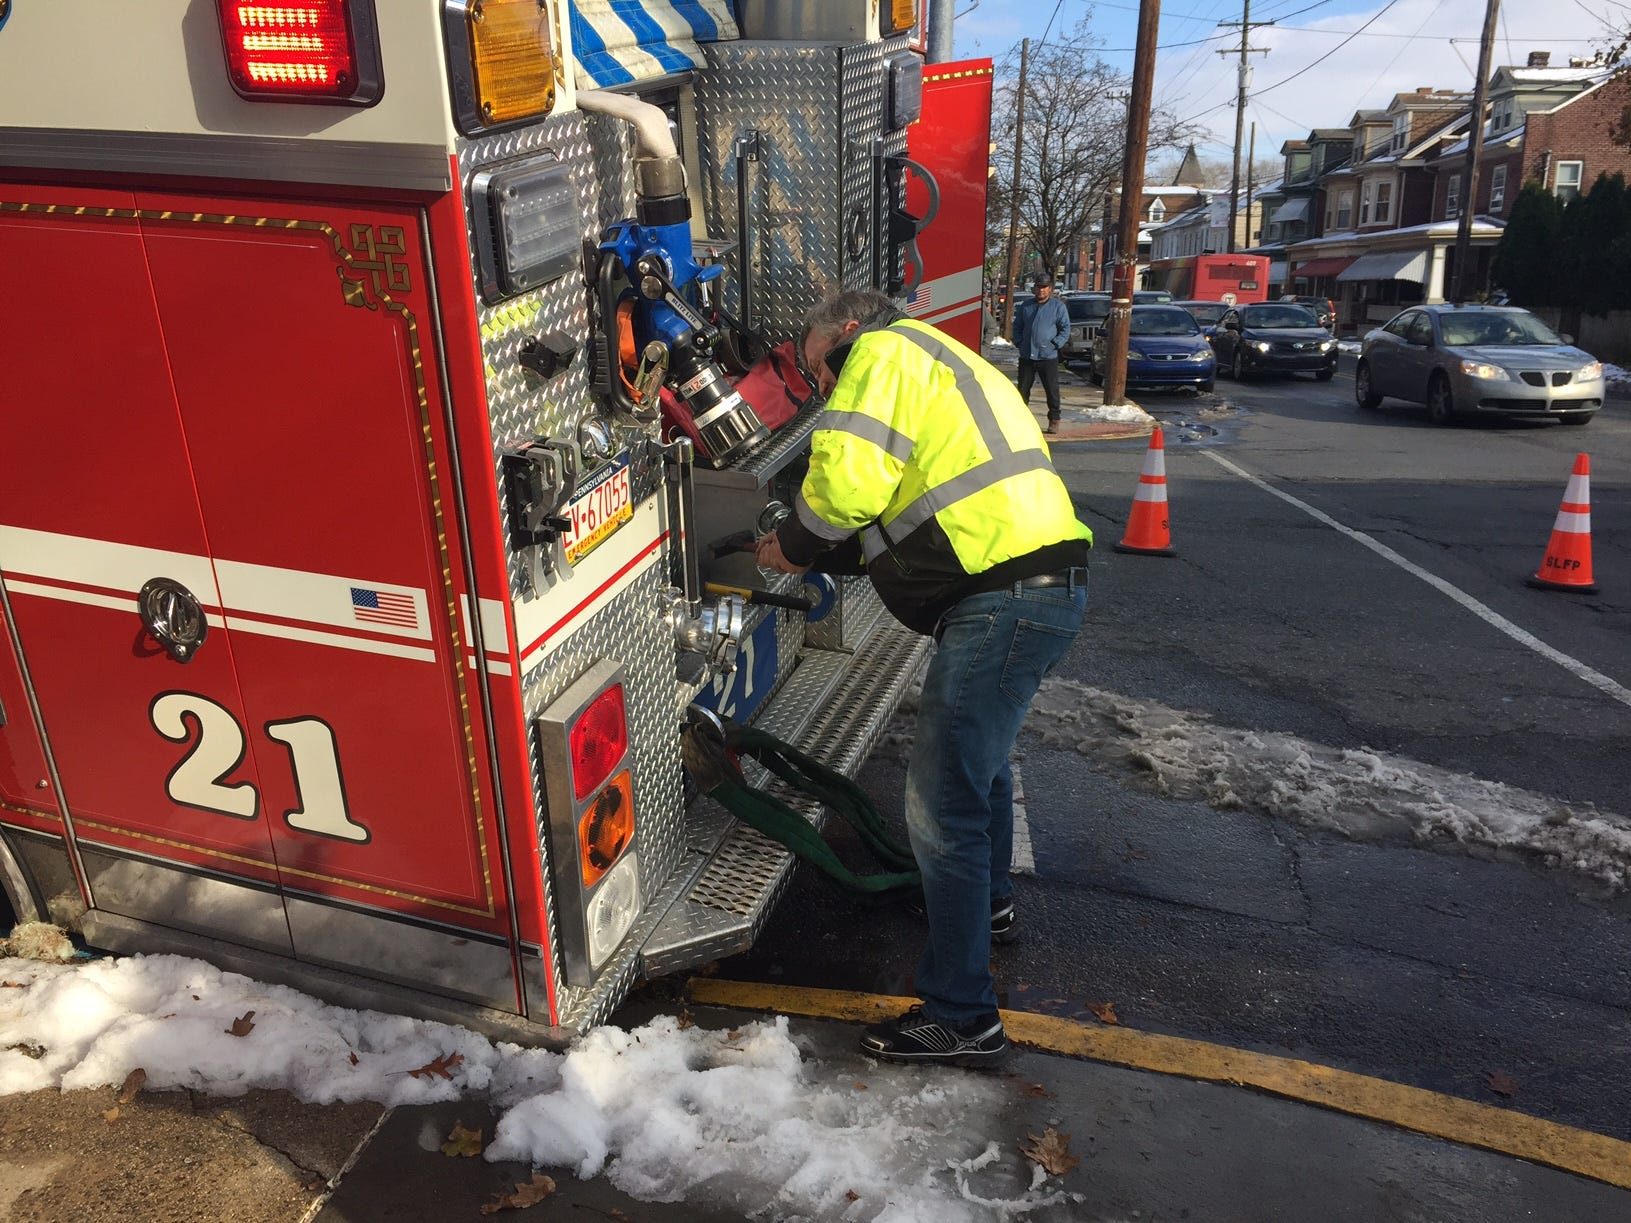 A Lebanon firetruck got its left rear wheel stuck on Saturday afternoon at the intersection of N. 9th and Lehman streets. A tow truck was needed to get the truck out of its predicament.